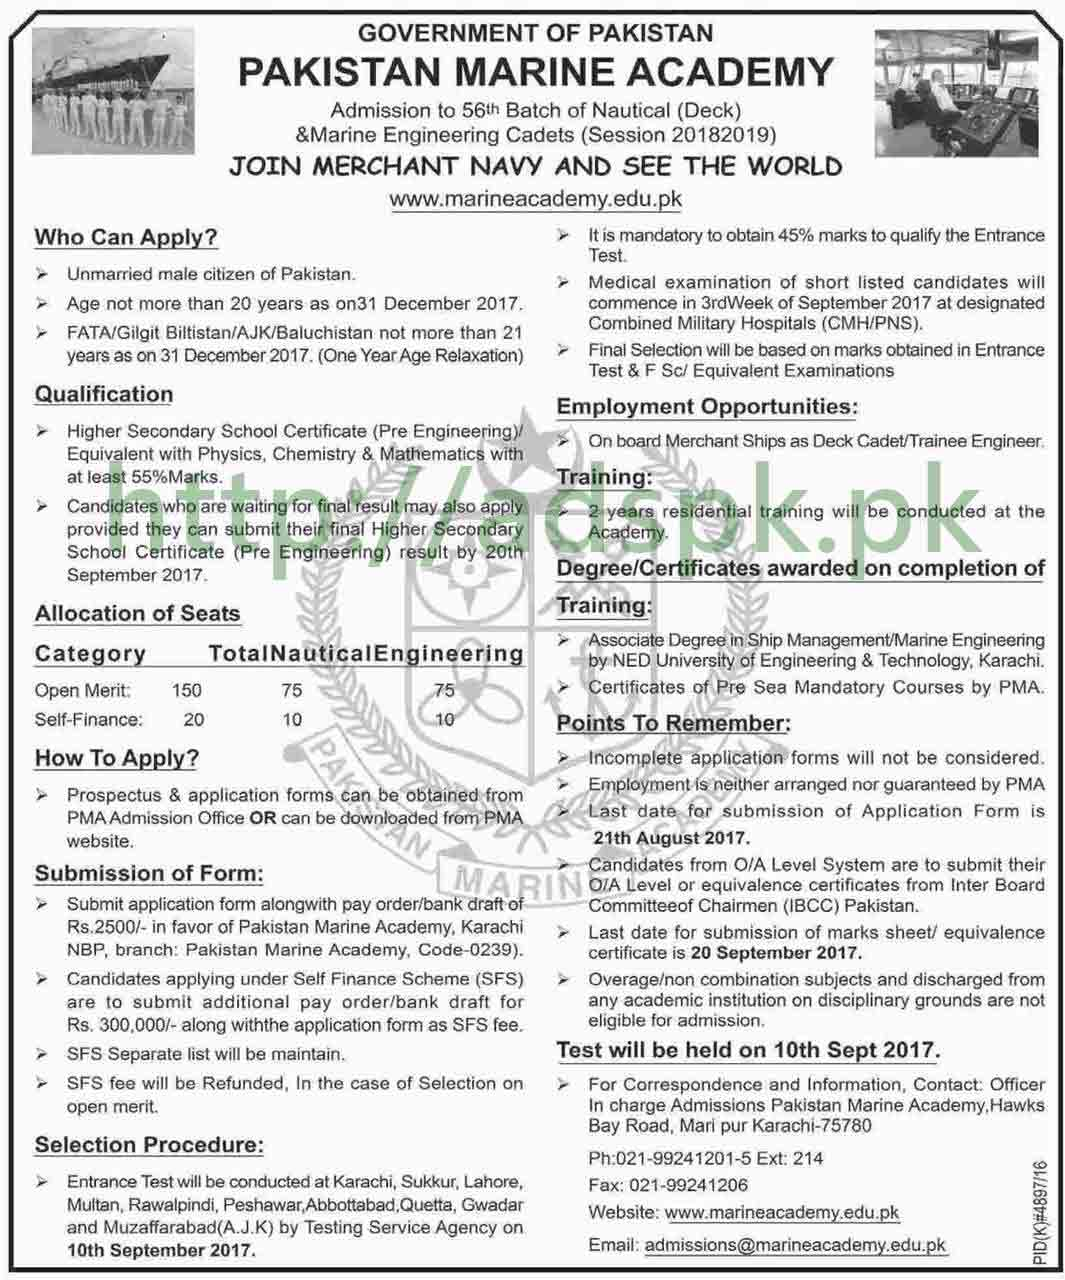 Join Pakistan Merchant Navy Pakistan Marine Academy Admission 2018 to 56th Batch Nautical and Marine Engineering Cadets Application Deadline 21-08-2017 Apply Now